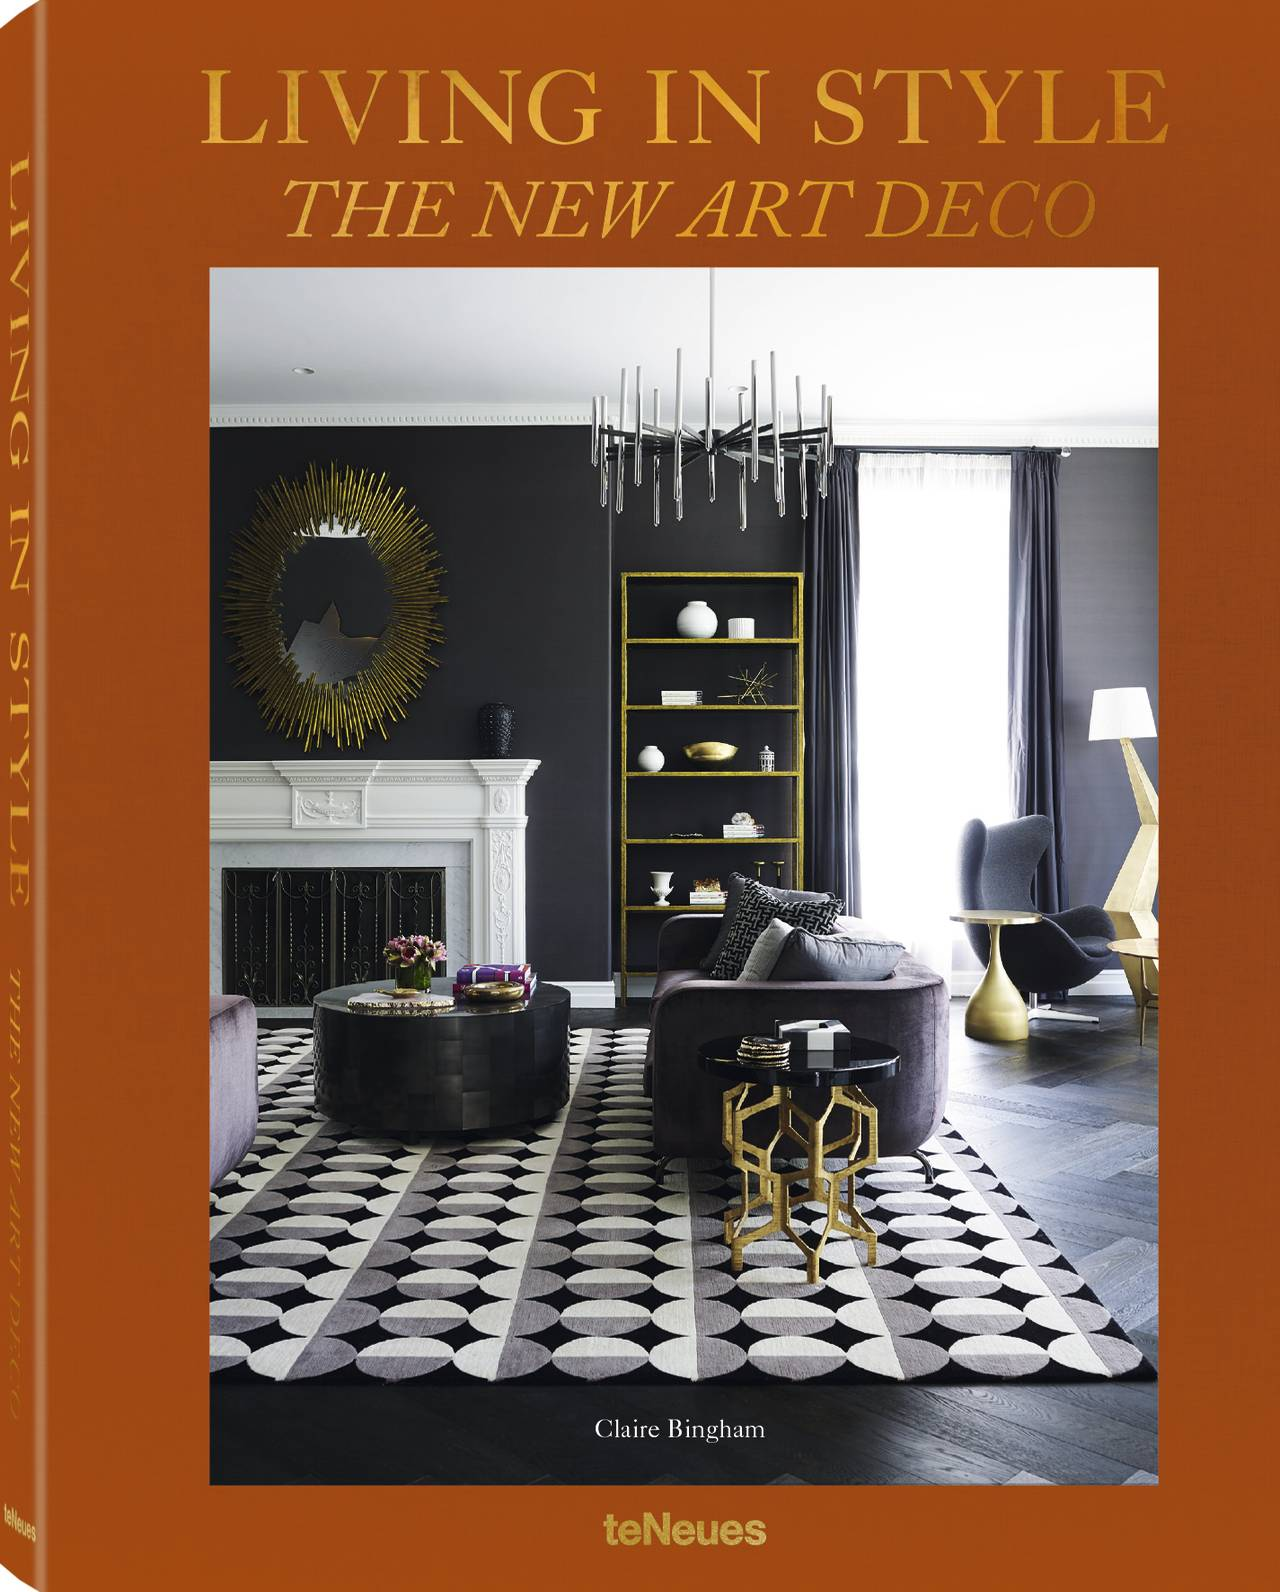 © Living in Style - The New Art Deco by Claire Bingham, published by teNeues, www.teneues.com, Design © Greg Natale, Photo © Anson Smart